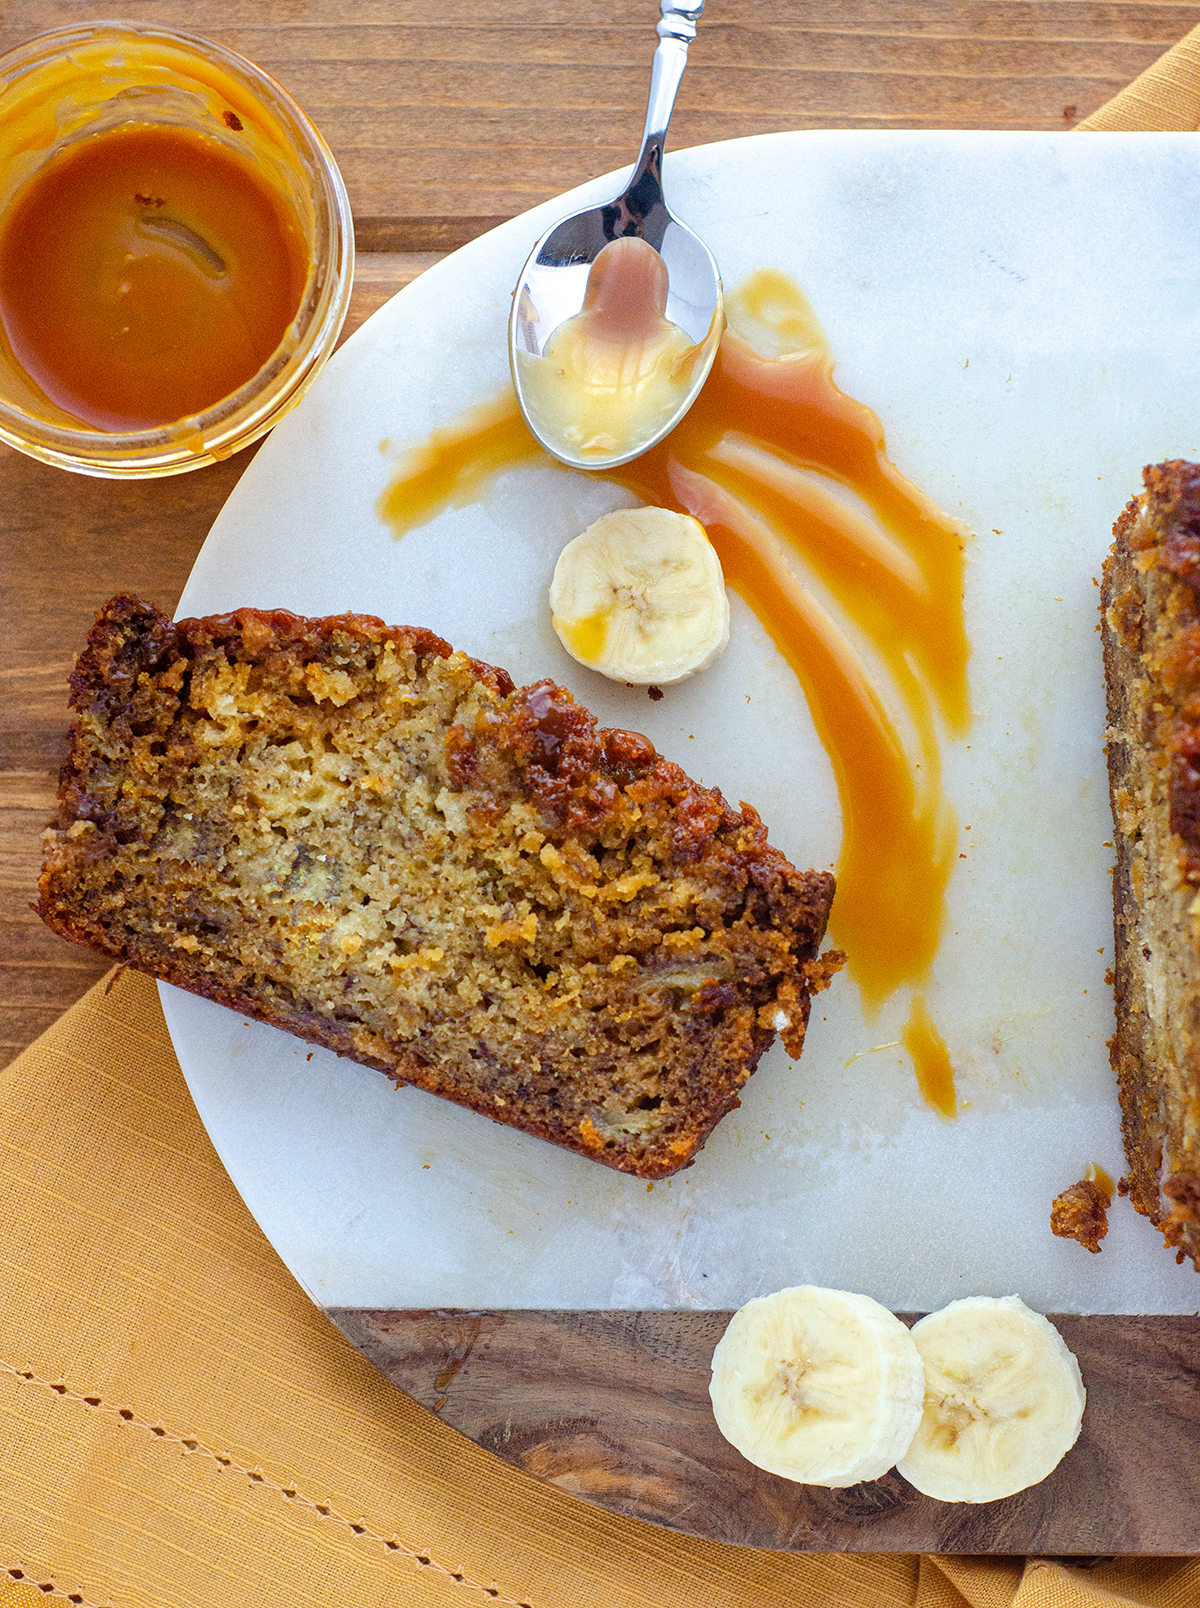 Classic banana bread gets swirled with salted bourbon caramel sauce for a jazzy take on the original.